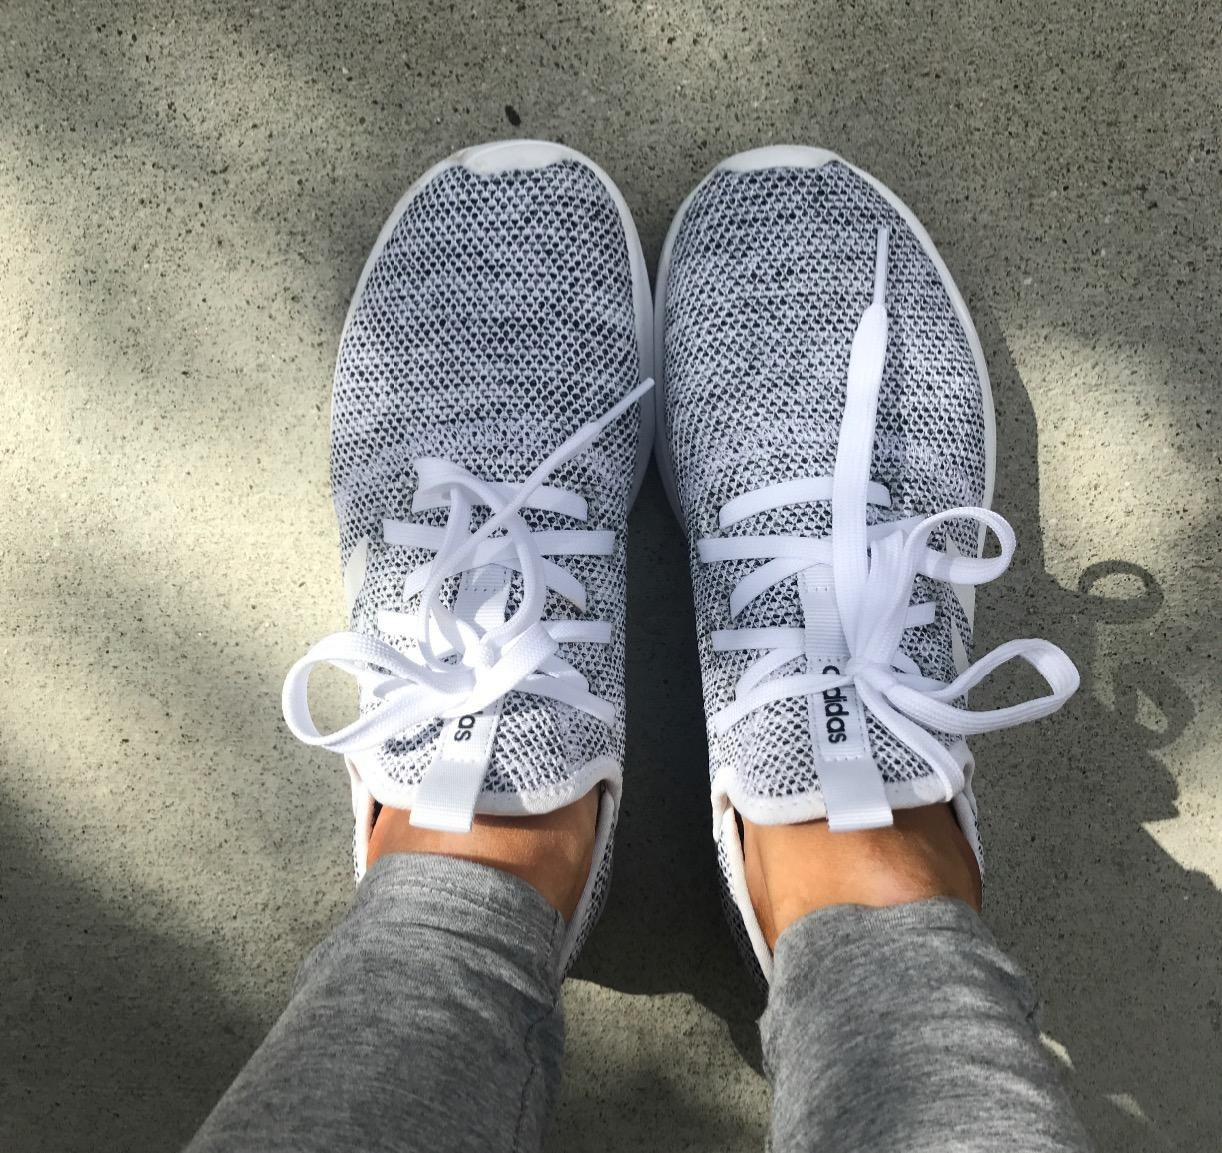 reviewer wearing black and white adidas running shoes with white shoelaces